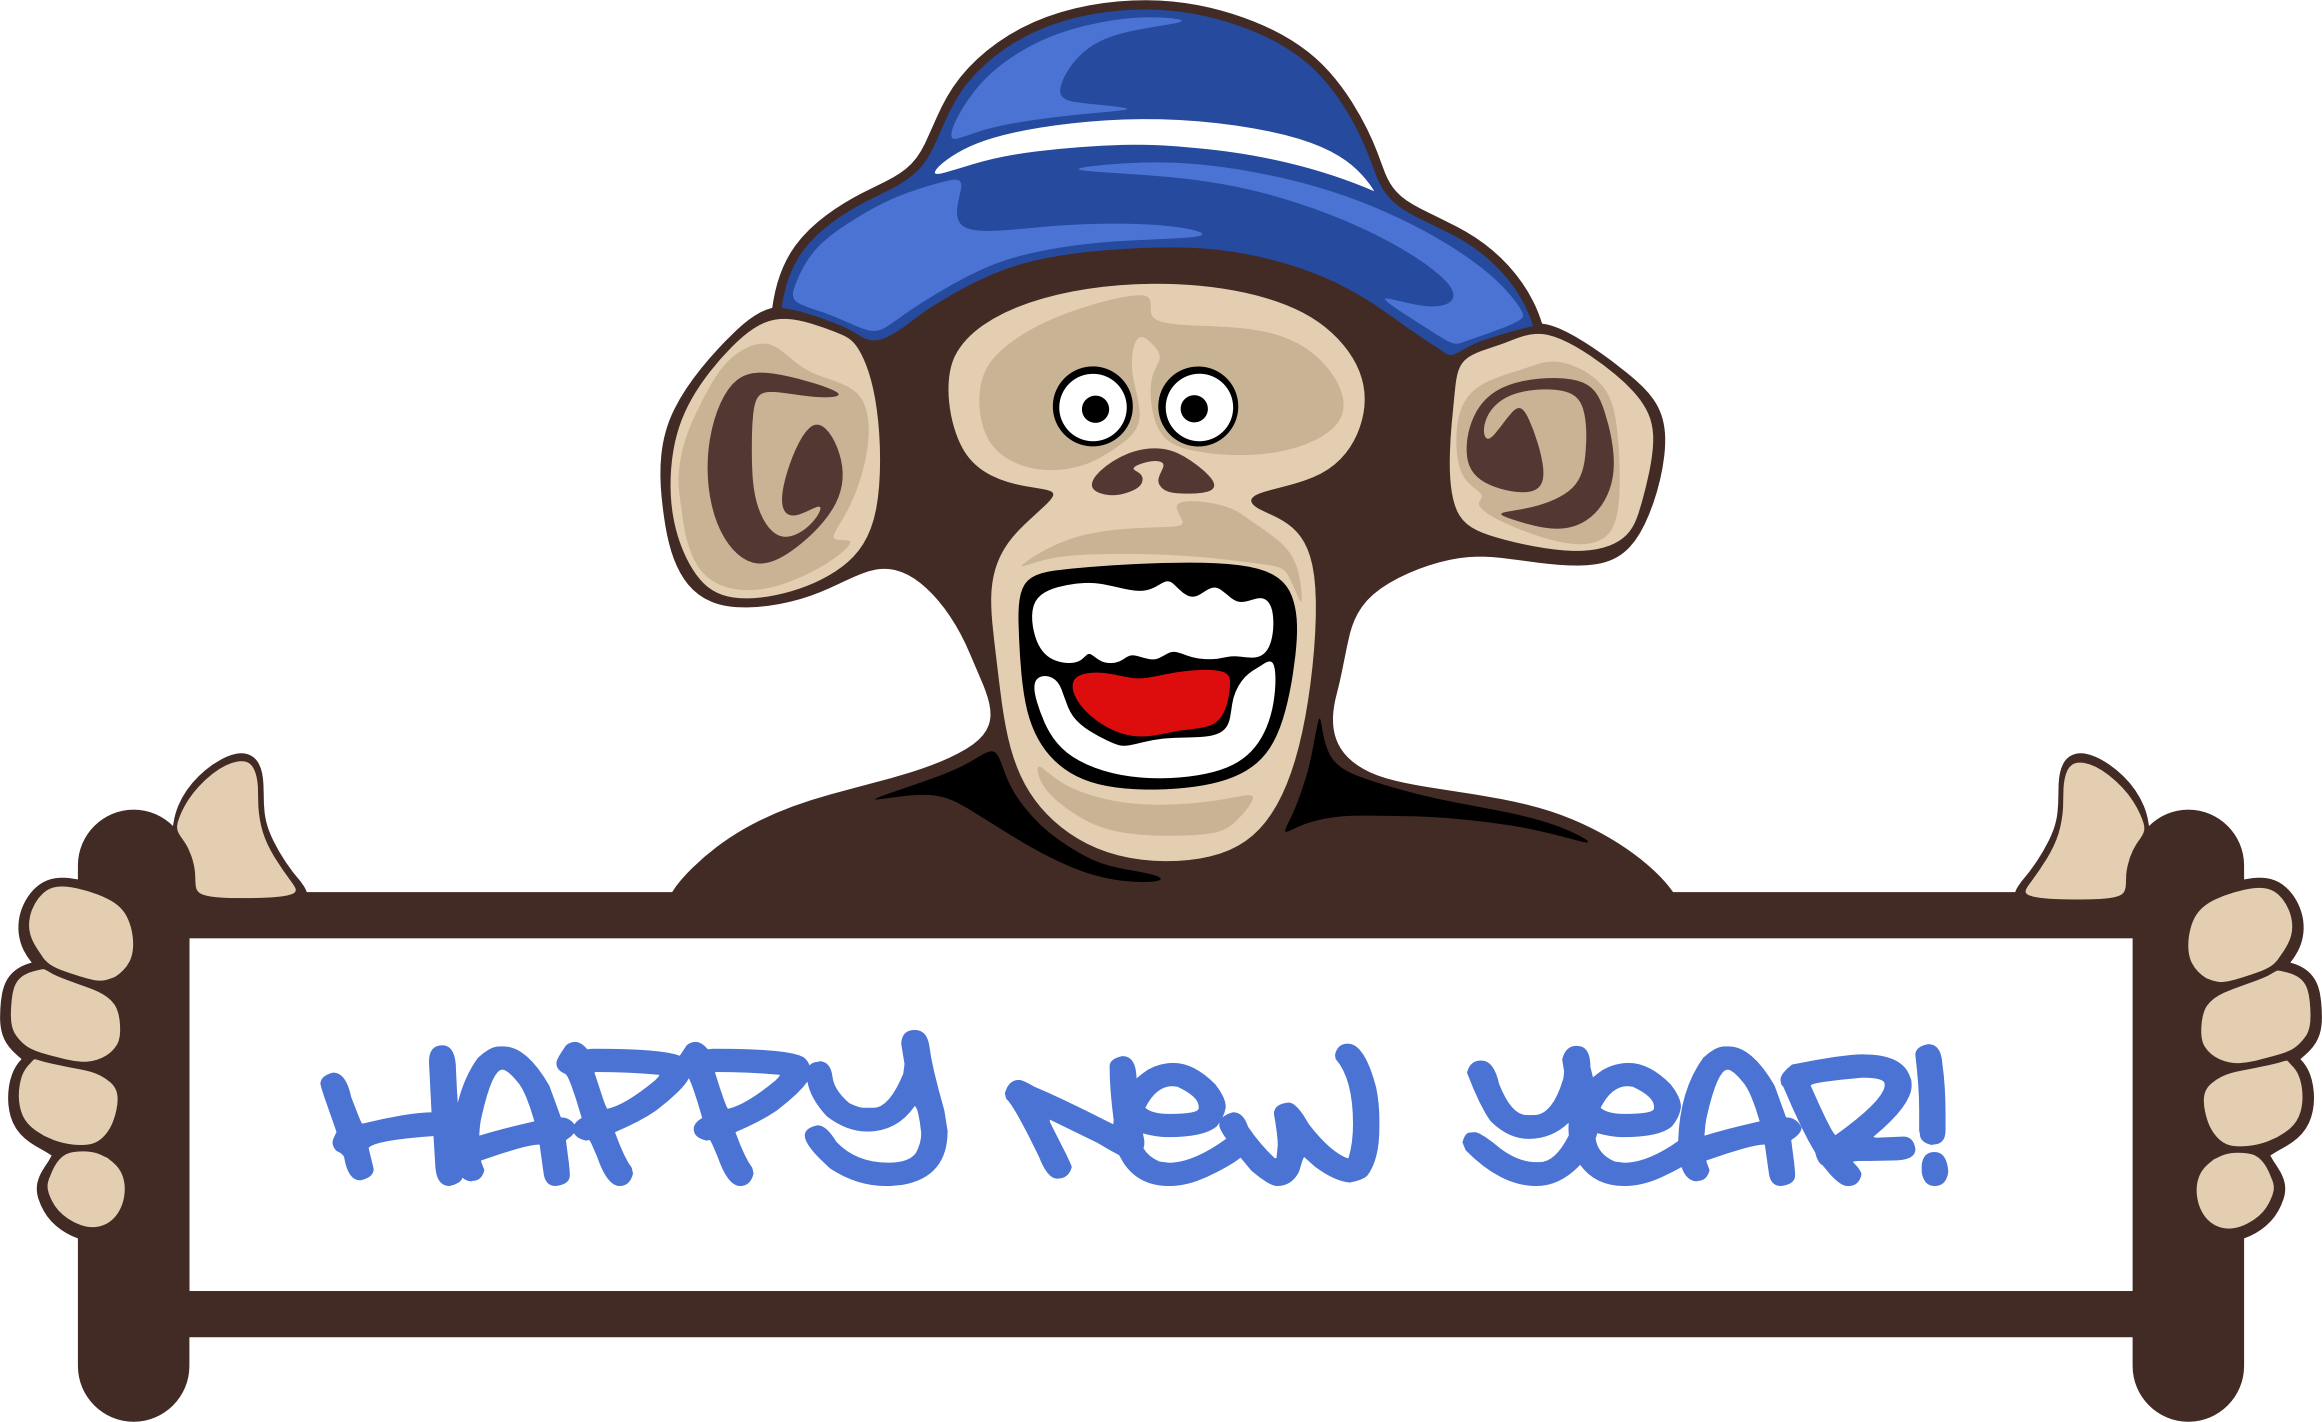 Happy New Year Monkey by GDJ